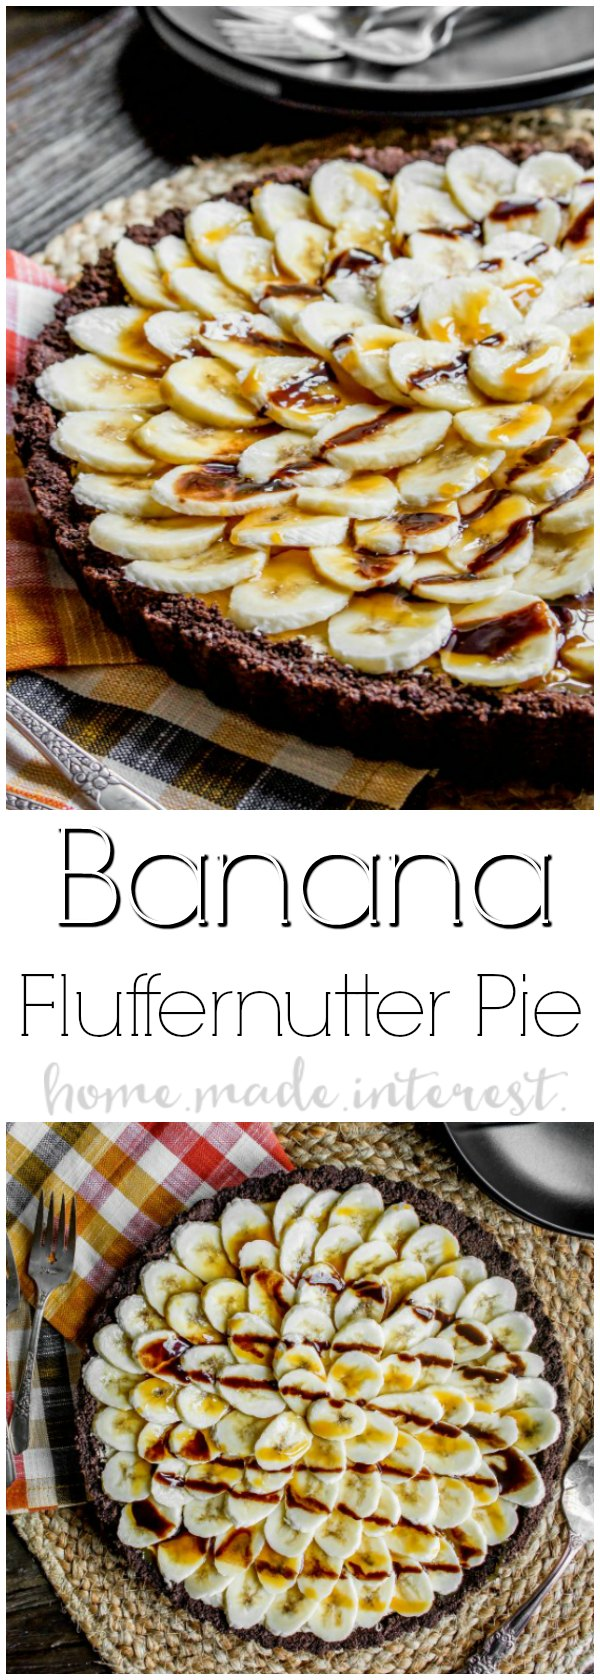 This easy dessert recipe is an almost no bake pie made with fluffernutter! Banana Fluffernutter Pie is a peanut butter twist on a banana cream pie. Chocolate graham cracker crust filled with fluffernutter and topped with fresh slices of bananas. This is a holiday dessert recipe that would make a great Thanksgiving dessert recipe or Christmas dessert recipe. If you like banana cream pie you're going to love this Banana Fluffernutter Pie! #pie #fluffernutter